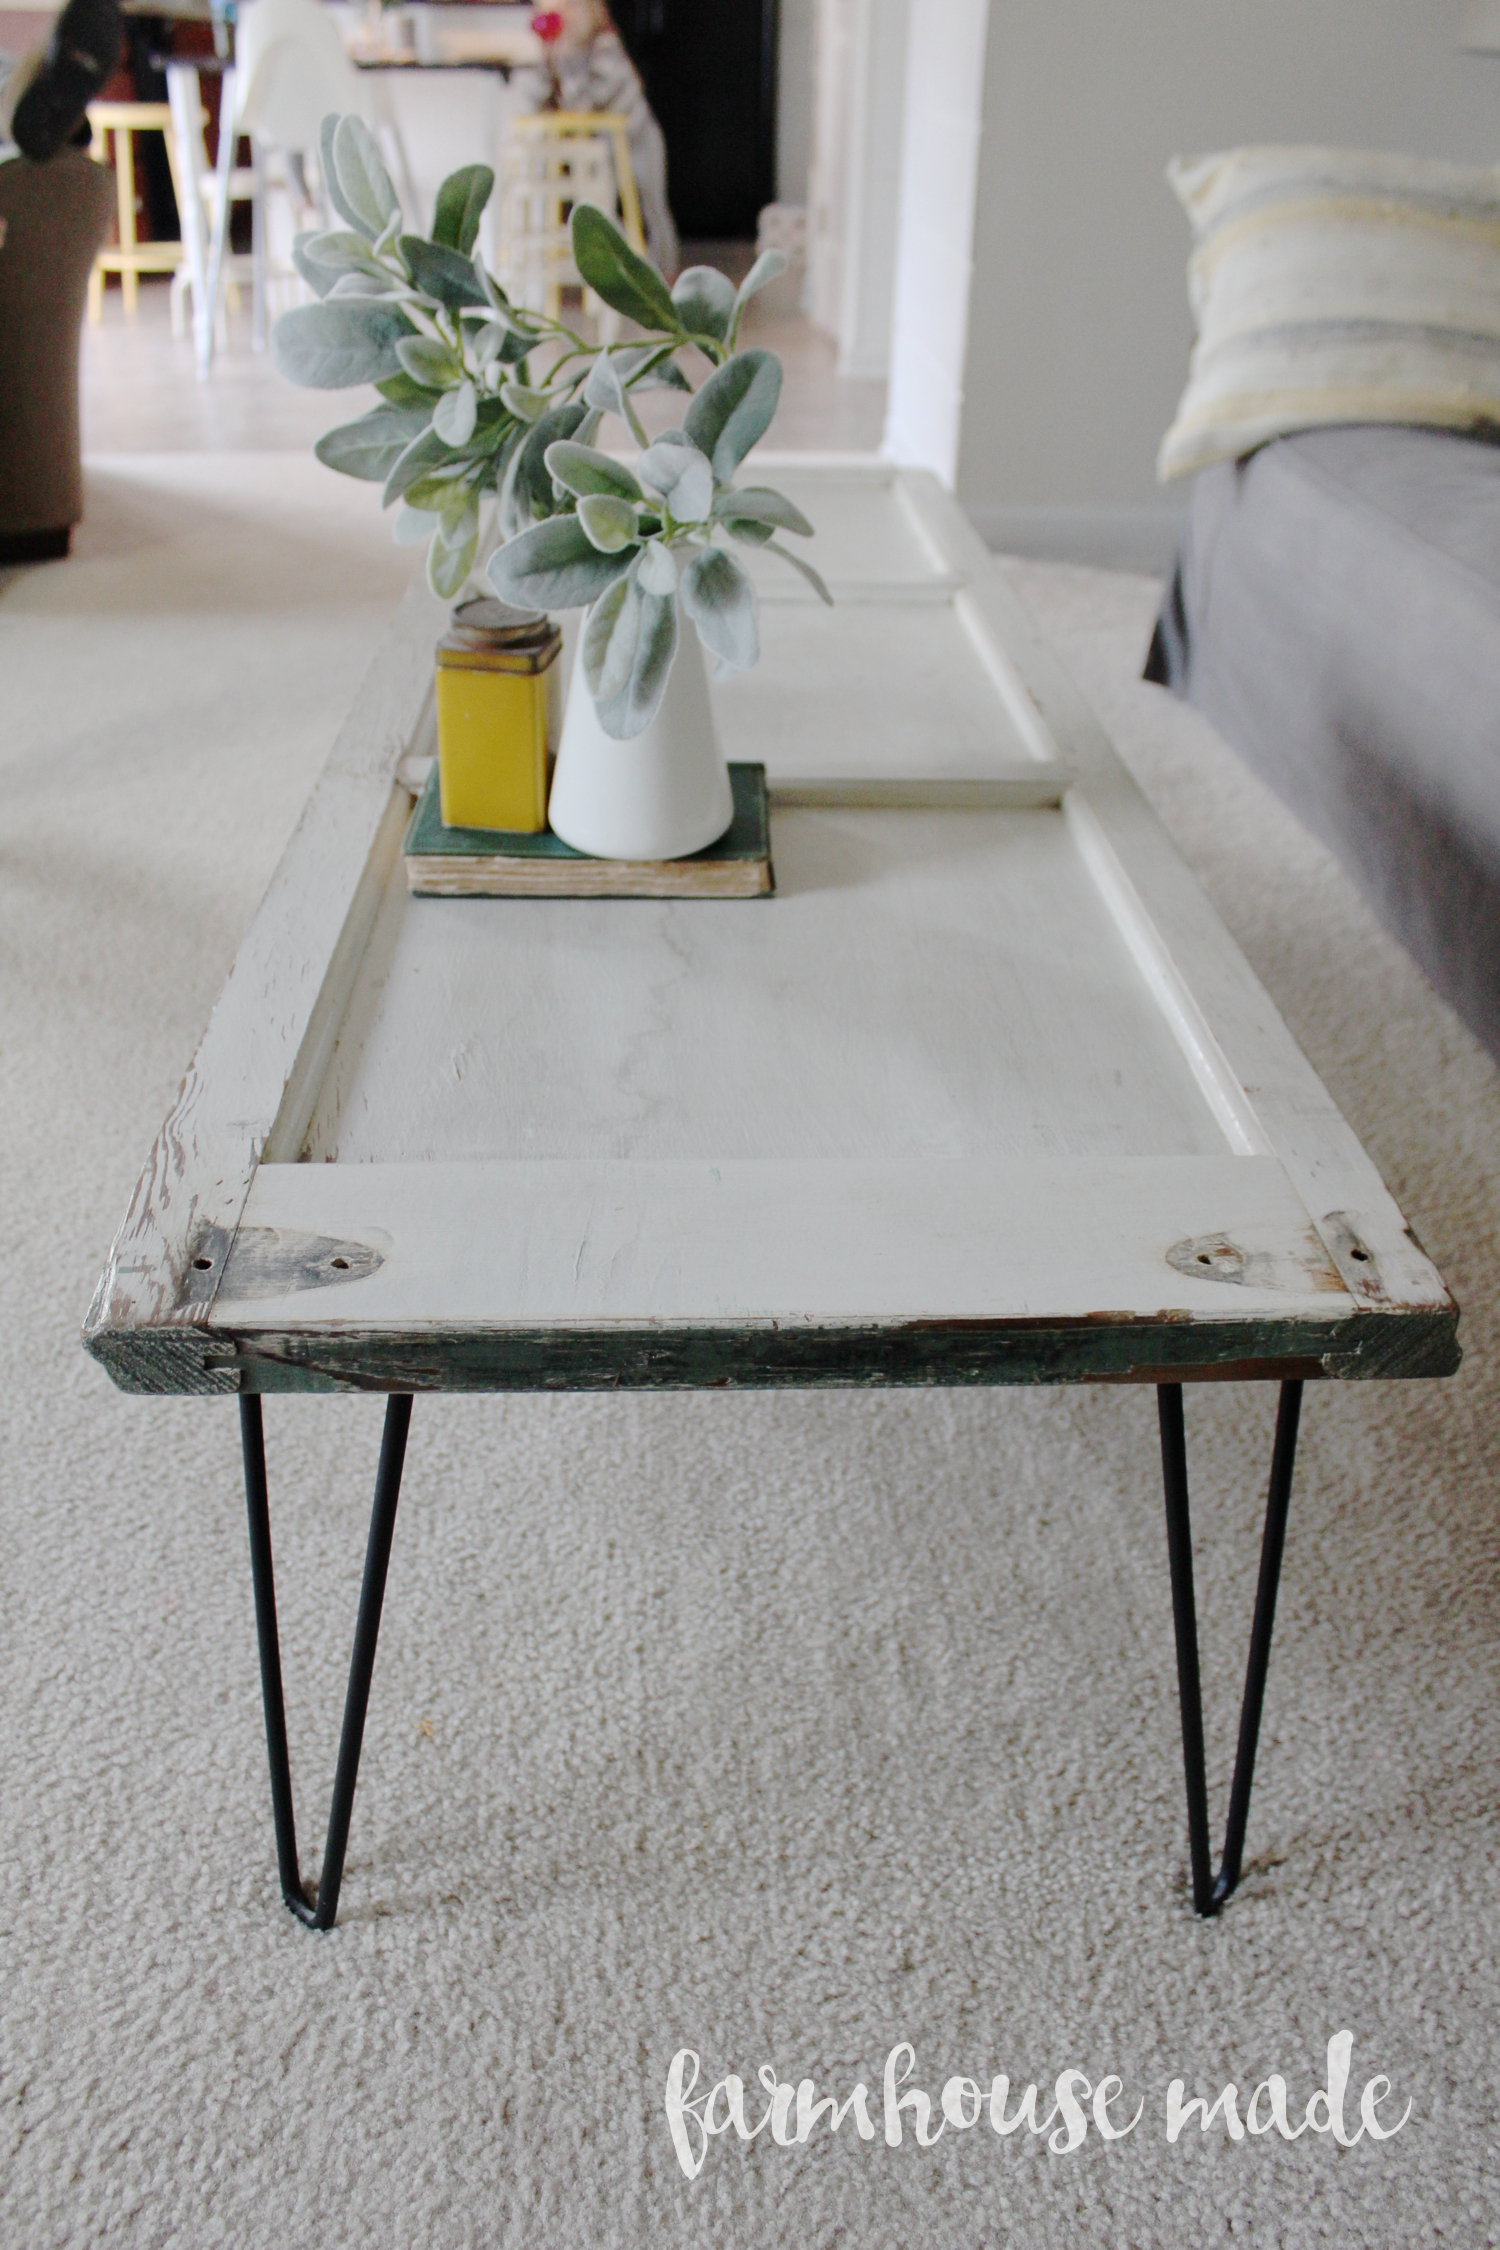 Top 5 diy 39 s to add farmhouse style farmhouse made Table making ideas